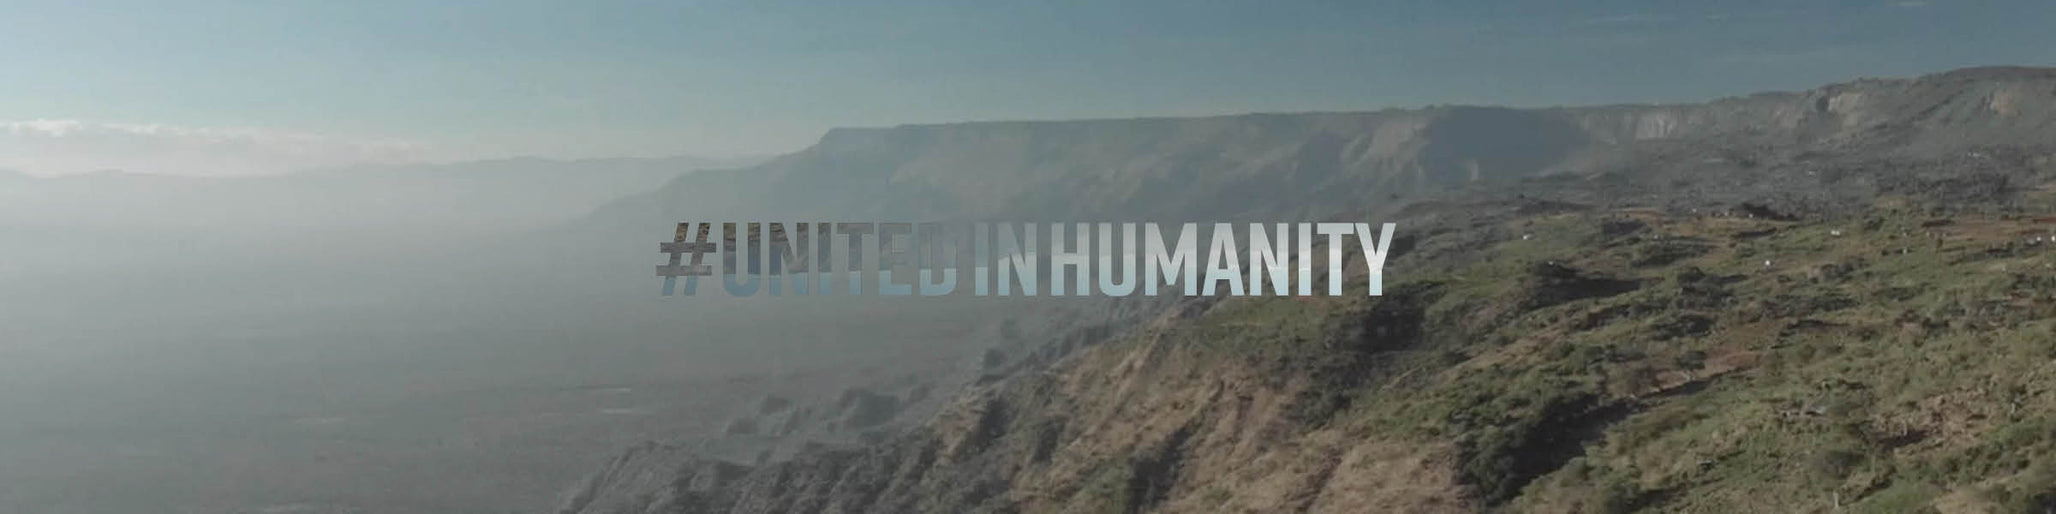 Ryzon United In Humanity Project // Johanneshaus Header Image